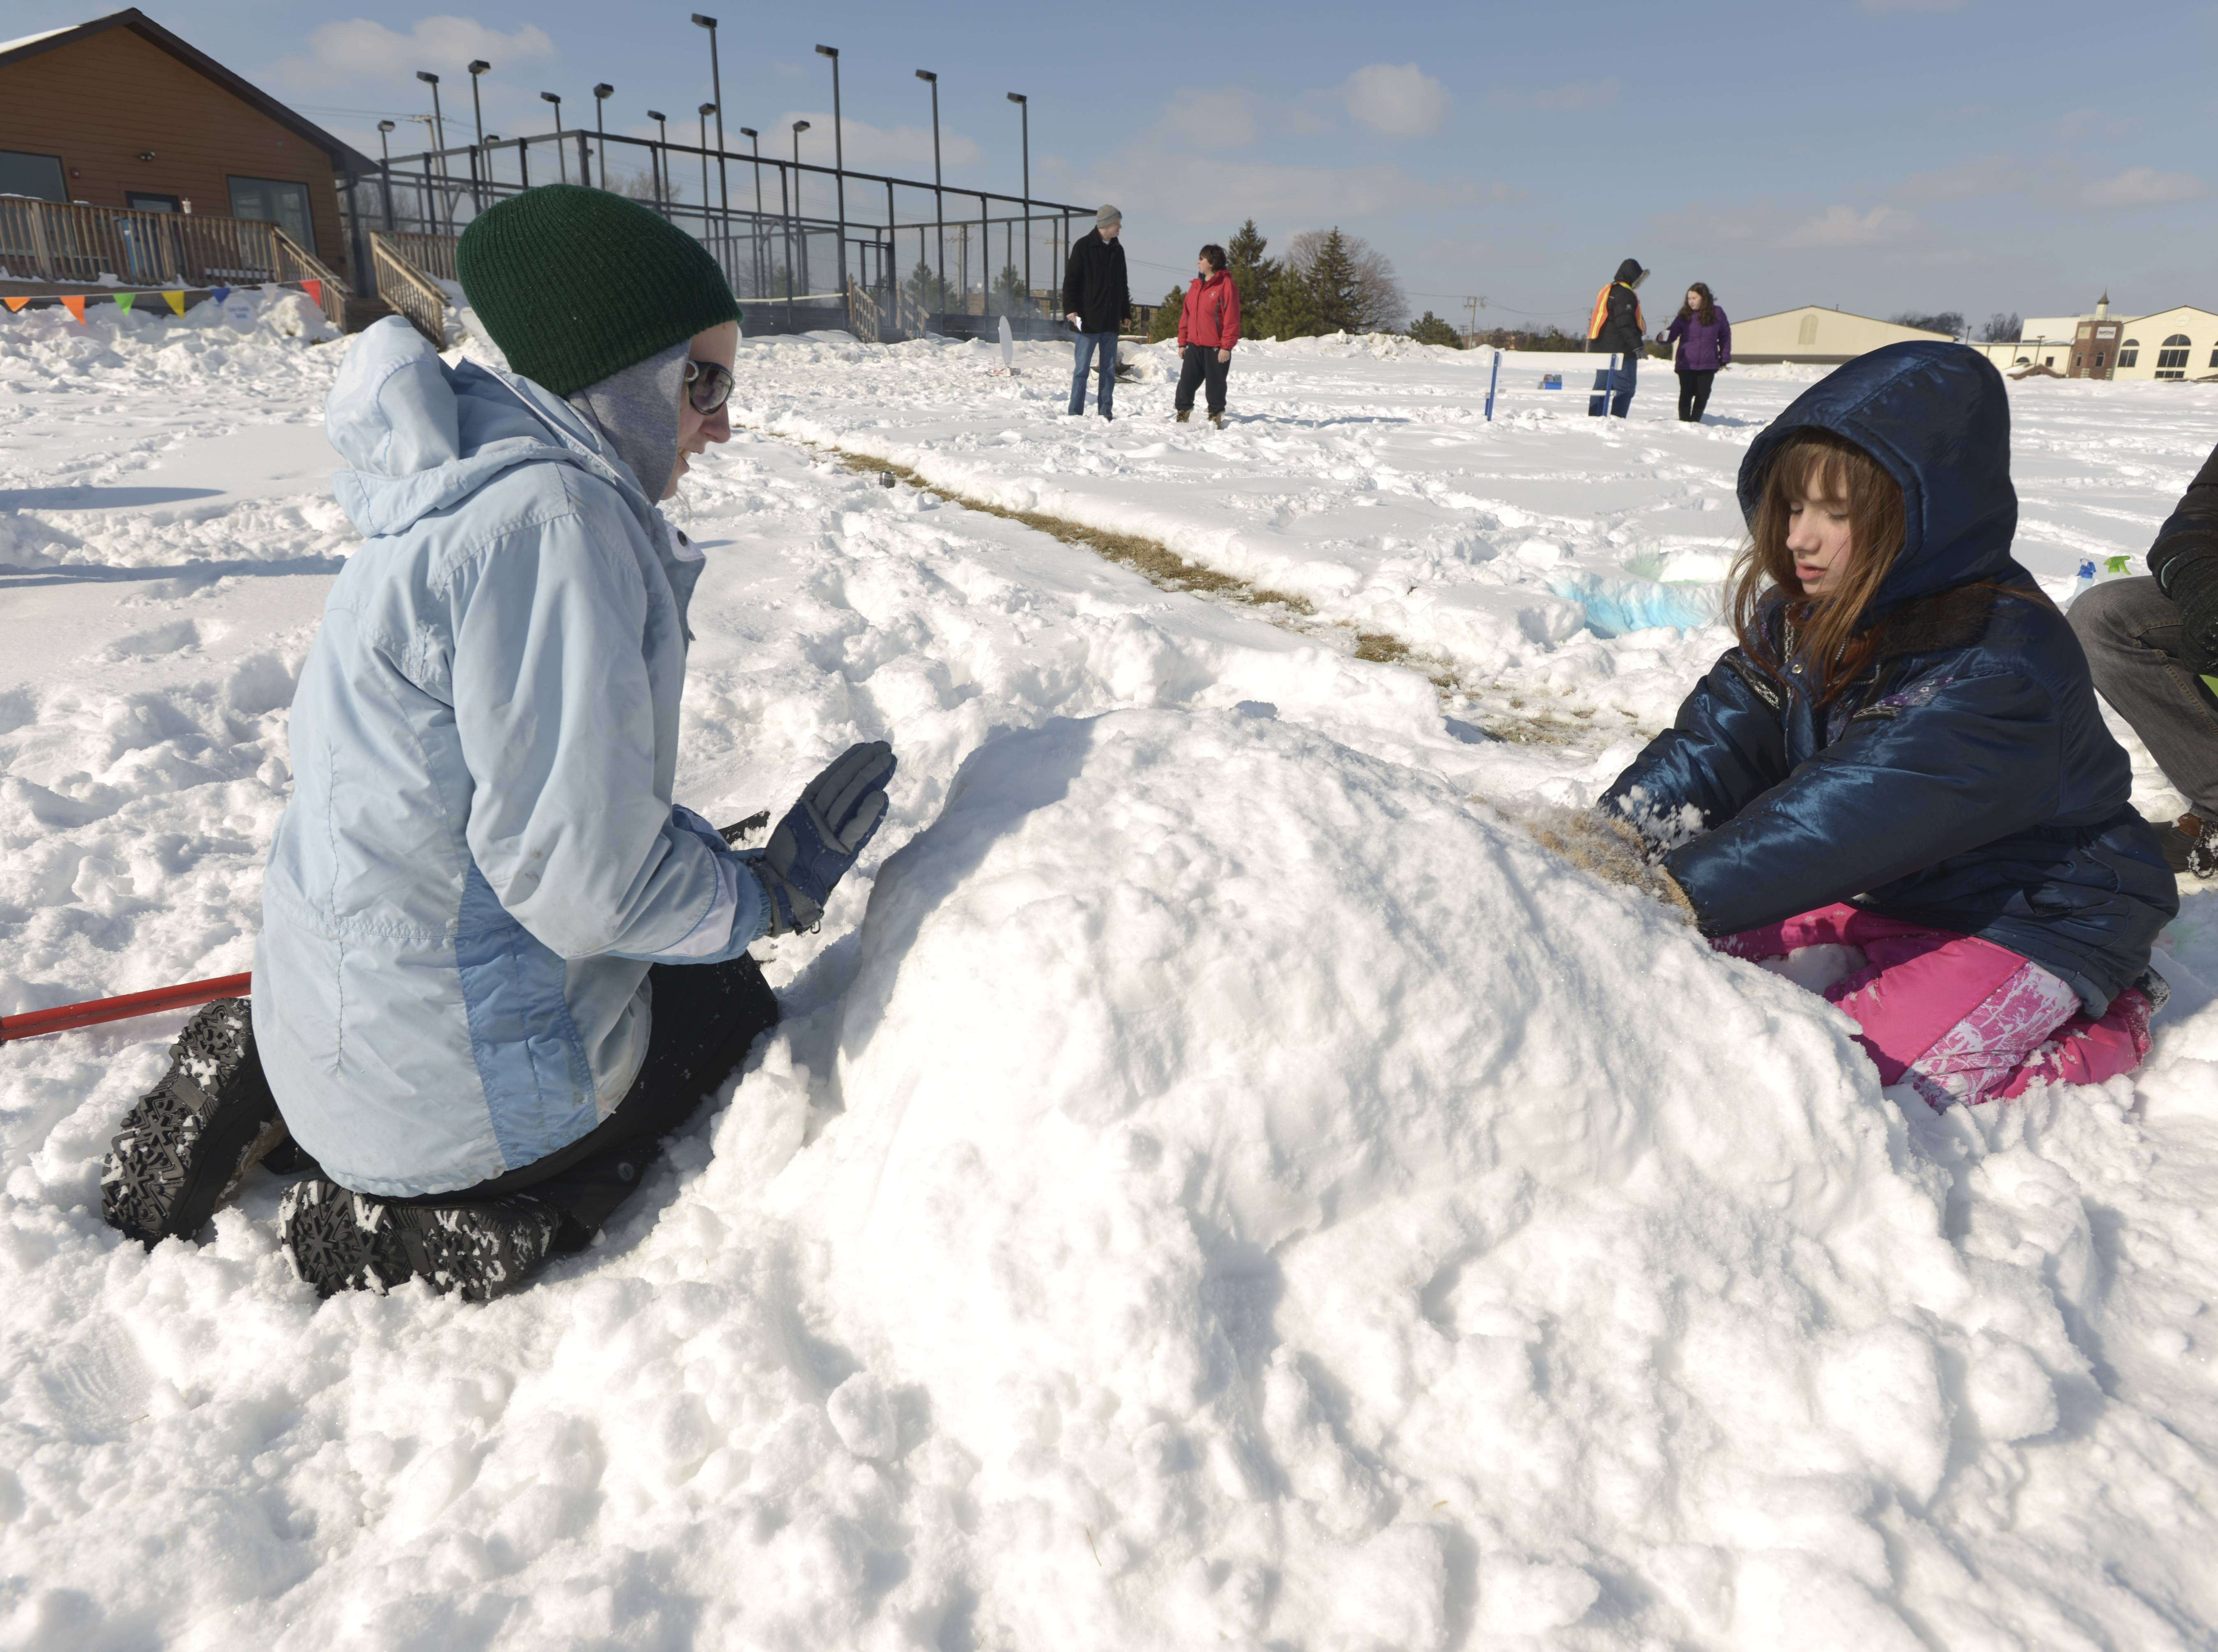 Kristine Jirsa and Tessa-Kay Stahulak, 11, of Wheaton work on building a Mickey Mouse snowman Sunday during the Glen Ellyn Park District's 2nd annual Arctic Blast event at Maryknoll Park.